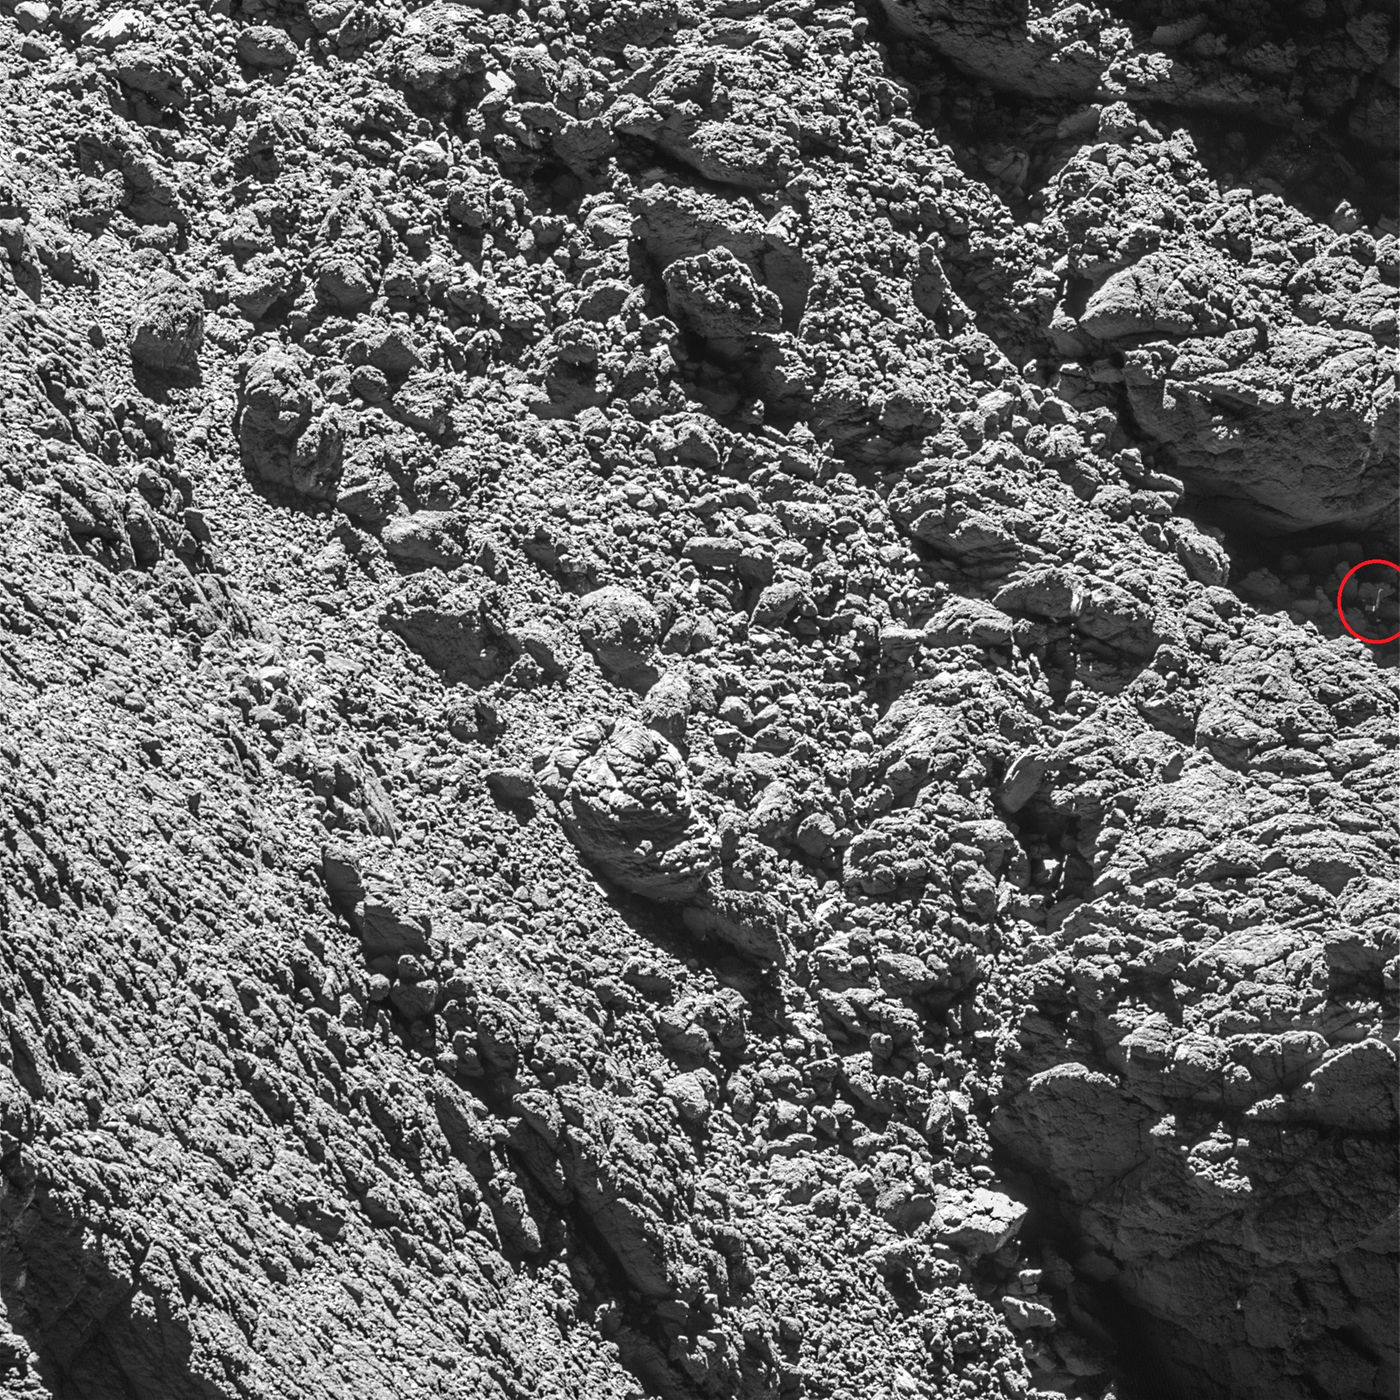 This image from Rosetta's OSIRIS narrow-angle camera is the discovery image that finally spotted the Philae lander (which we've identified in a red circle at far right, near center). Credit: ESA/Rosetta/MPS for OSIRIS Team MPS/UPD/LAM/IAA/SSO/INTA/UPM/DASP/IDA